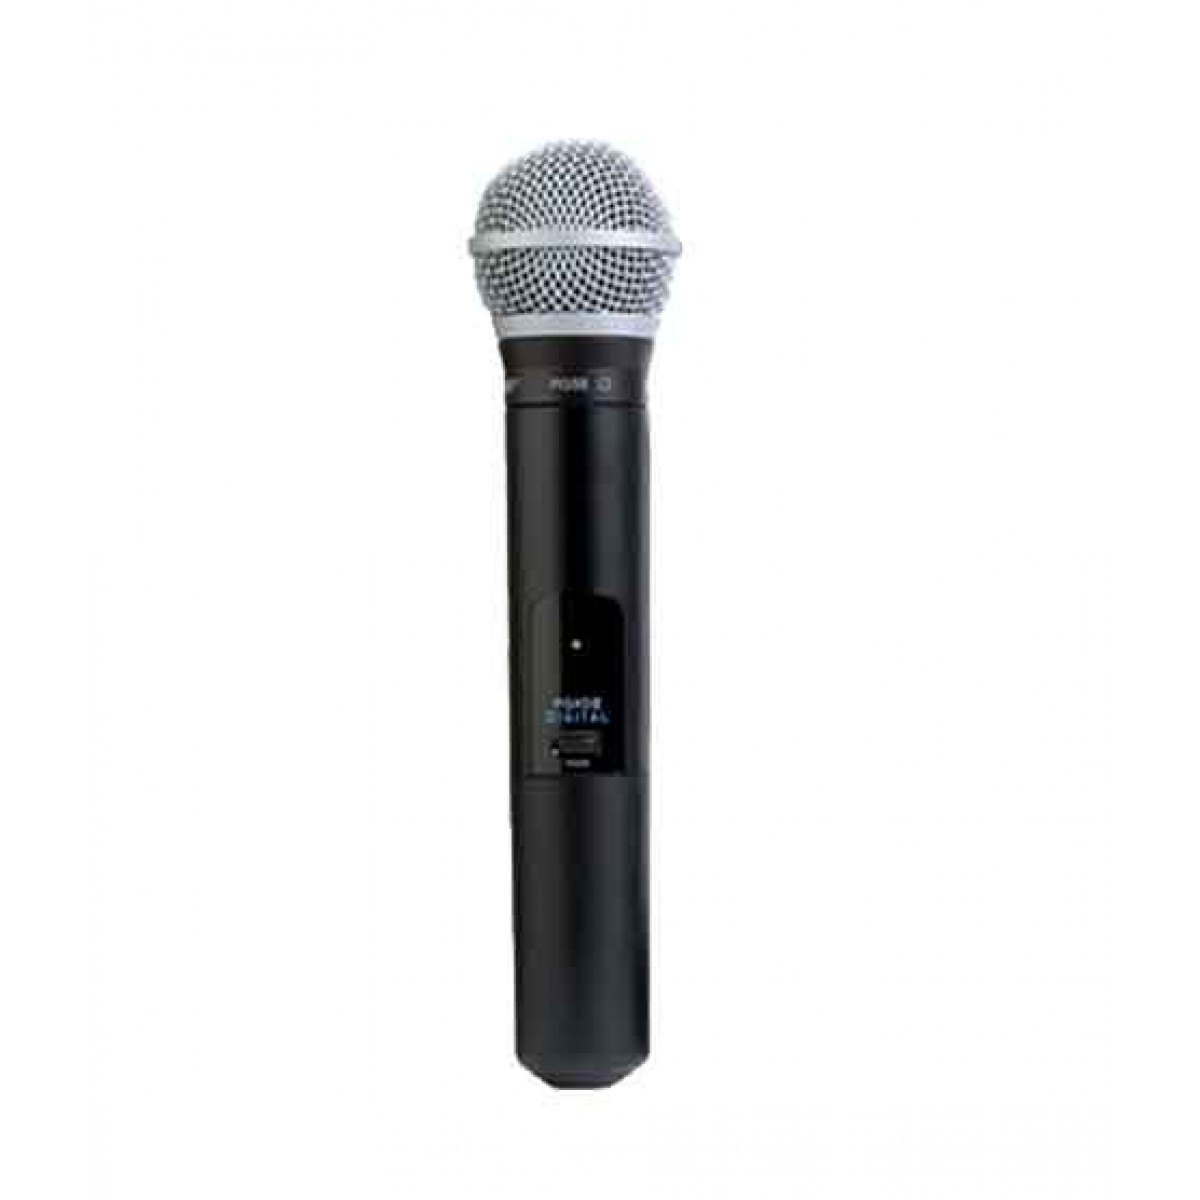 Shure Handheld Wireless Microphone Transmitter (PGXD2/SM58)